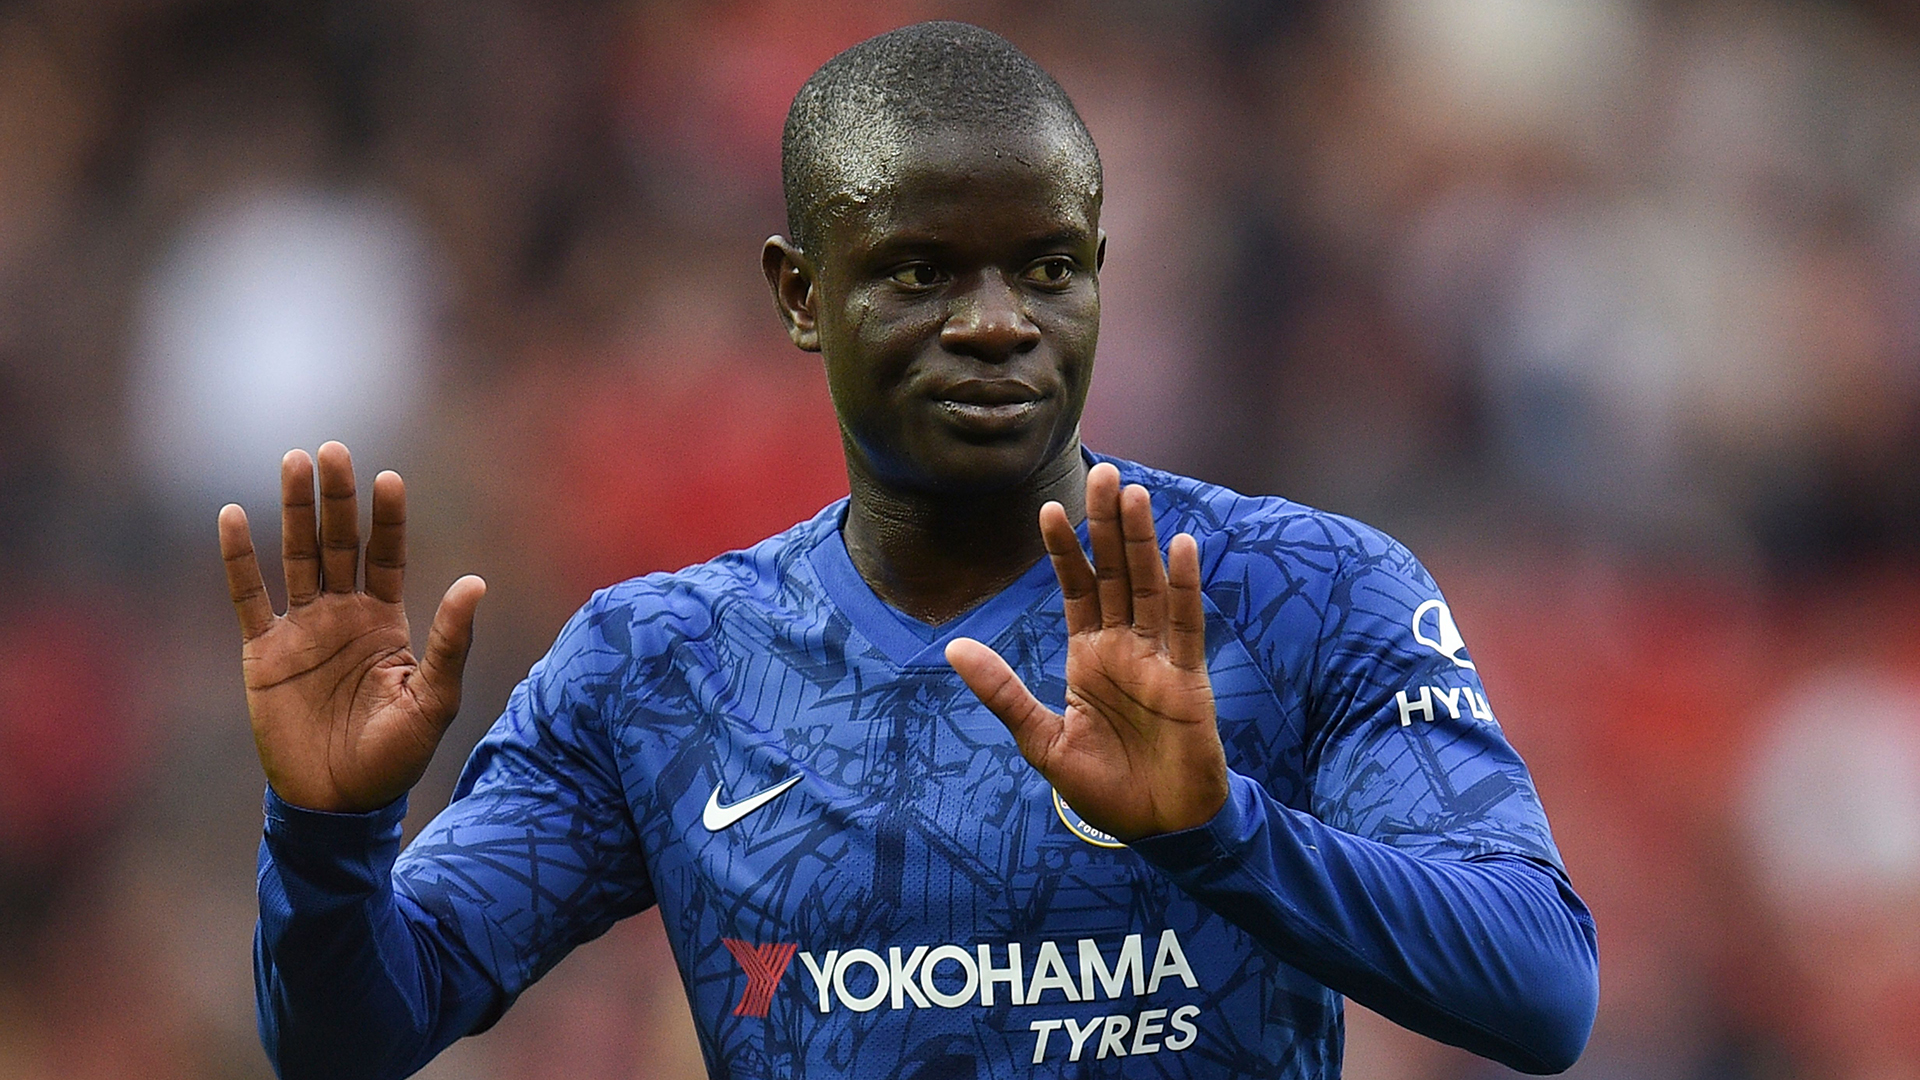 Kante is one of the best players I have ever coached' - Ex-Chelsea boss  Conte hails 'amazing' midfielder | Goal.com